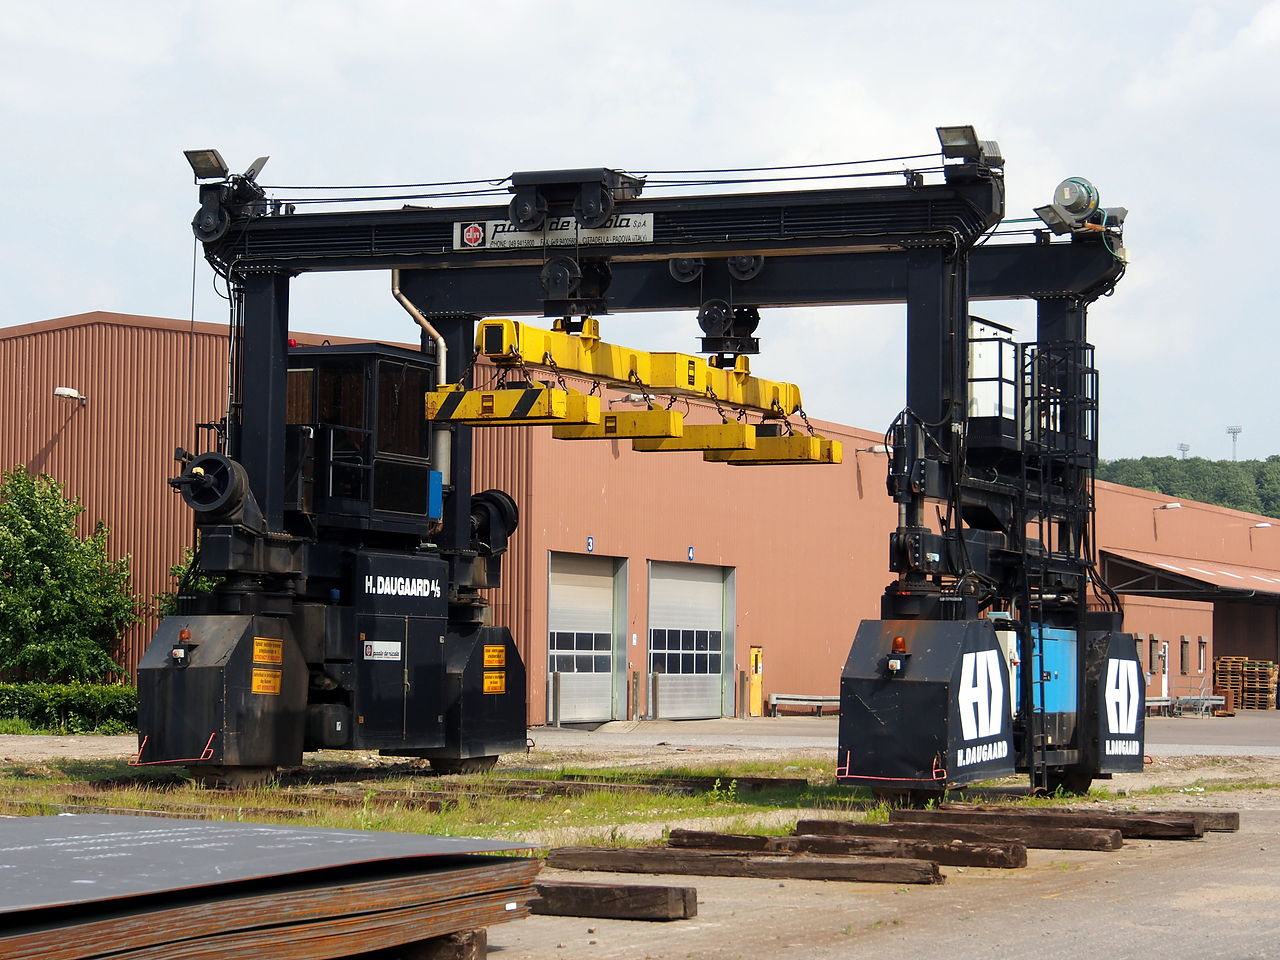 Rubber Tyred Gantry Cranes Translate : Rubber tyred gantry crane dimensions crafts